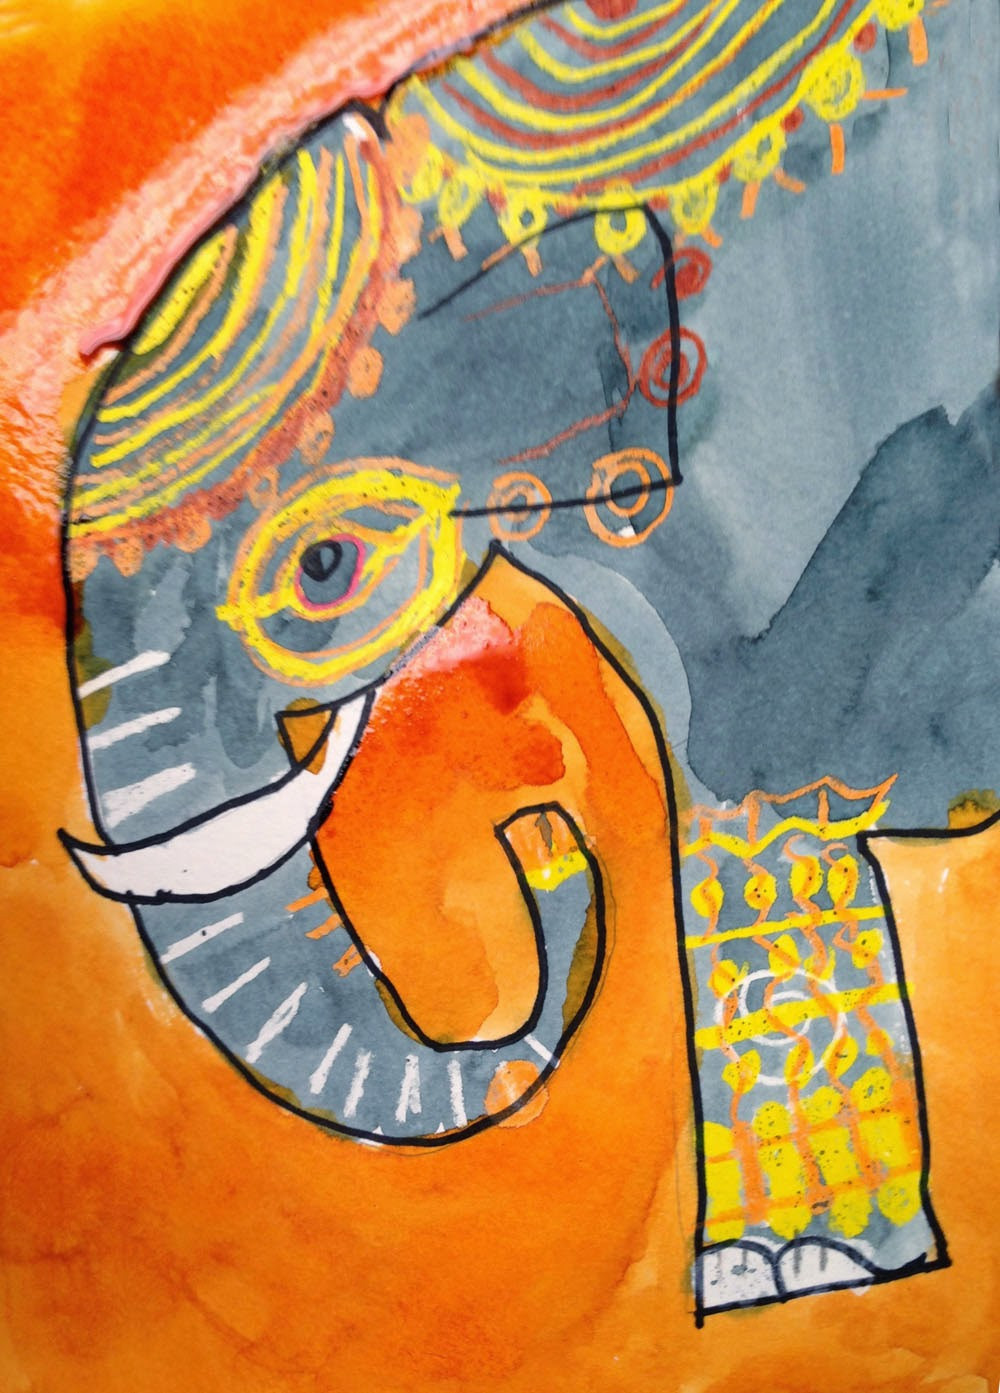 Best ideas about Art Projects For Kids . Save or Pin Lily's Elephant Now.